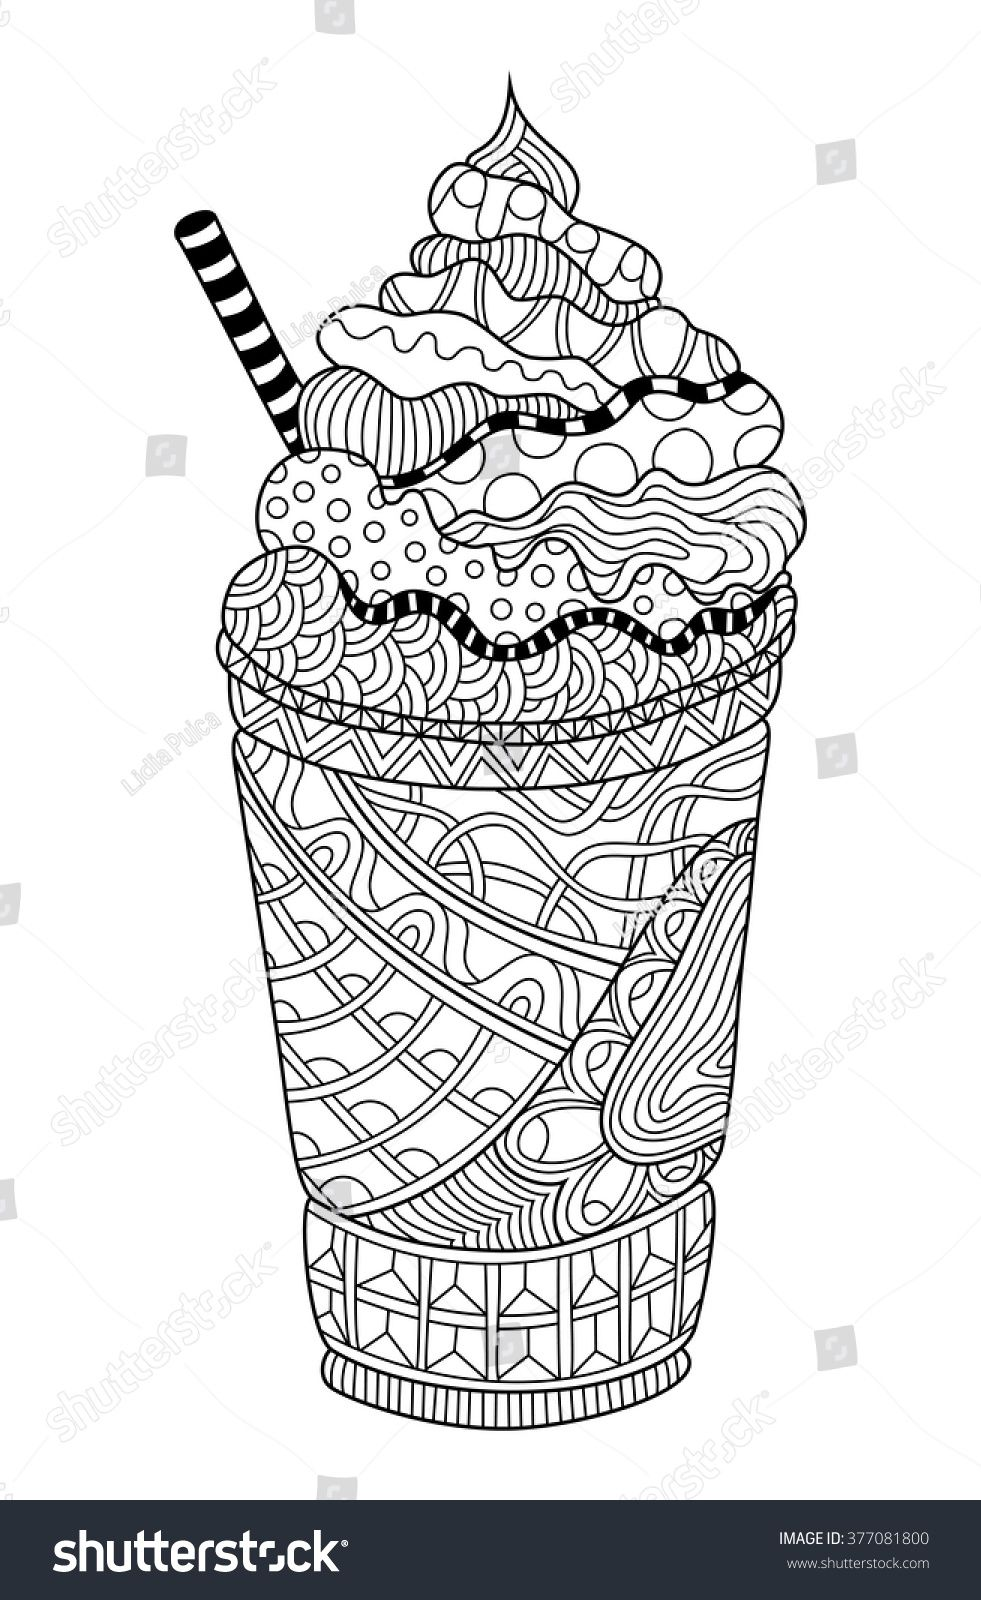 Latte Coloring Book Illustration fruits and juice